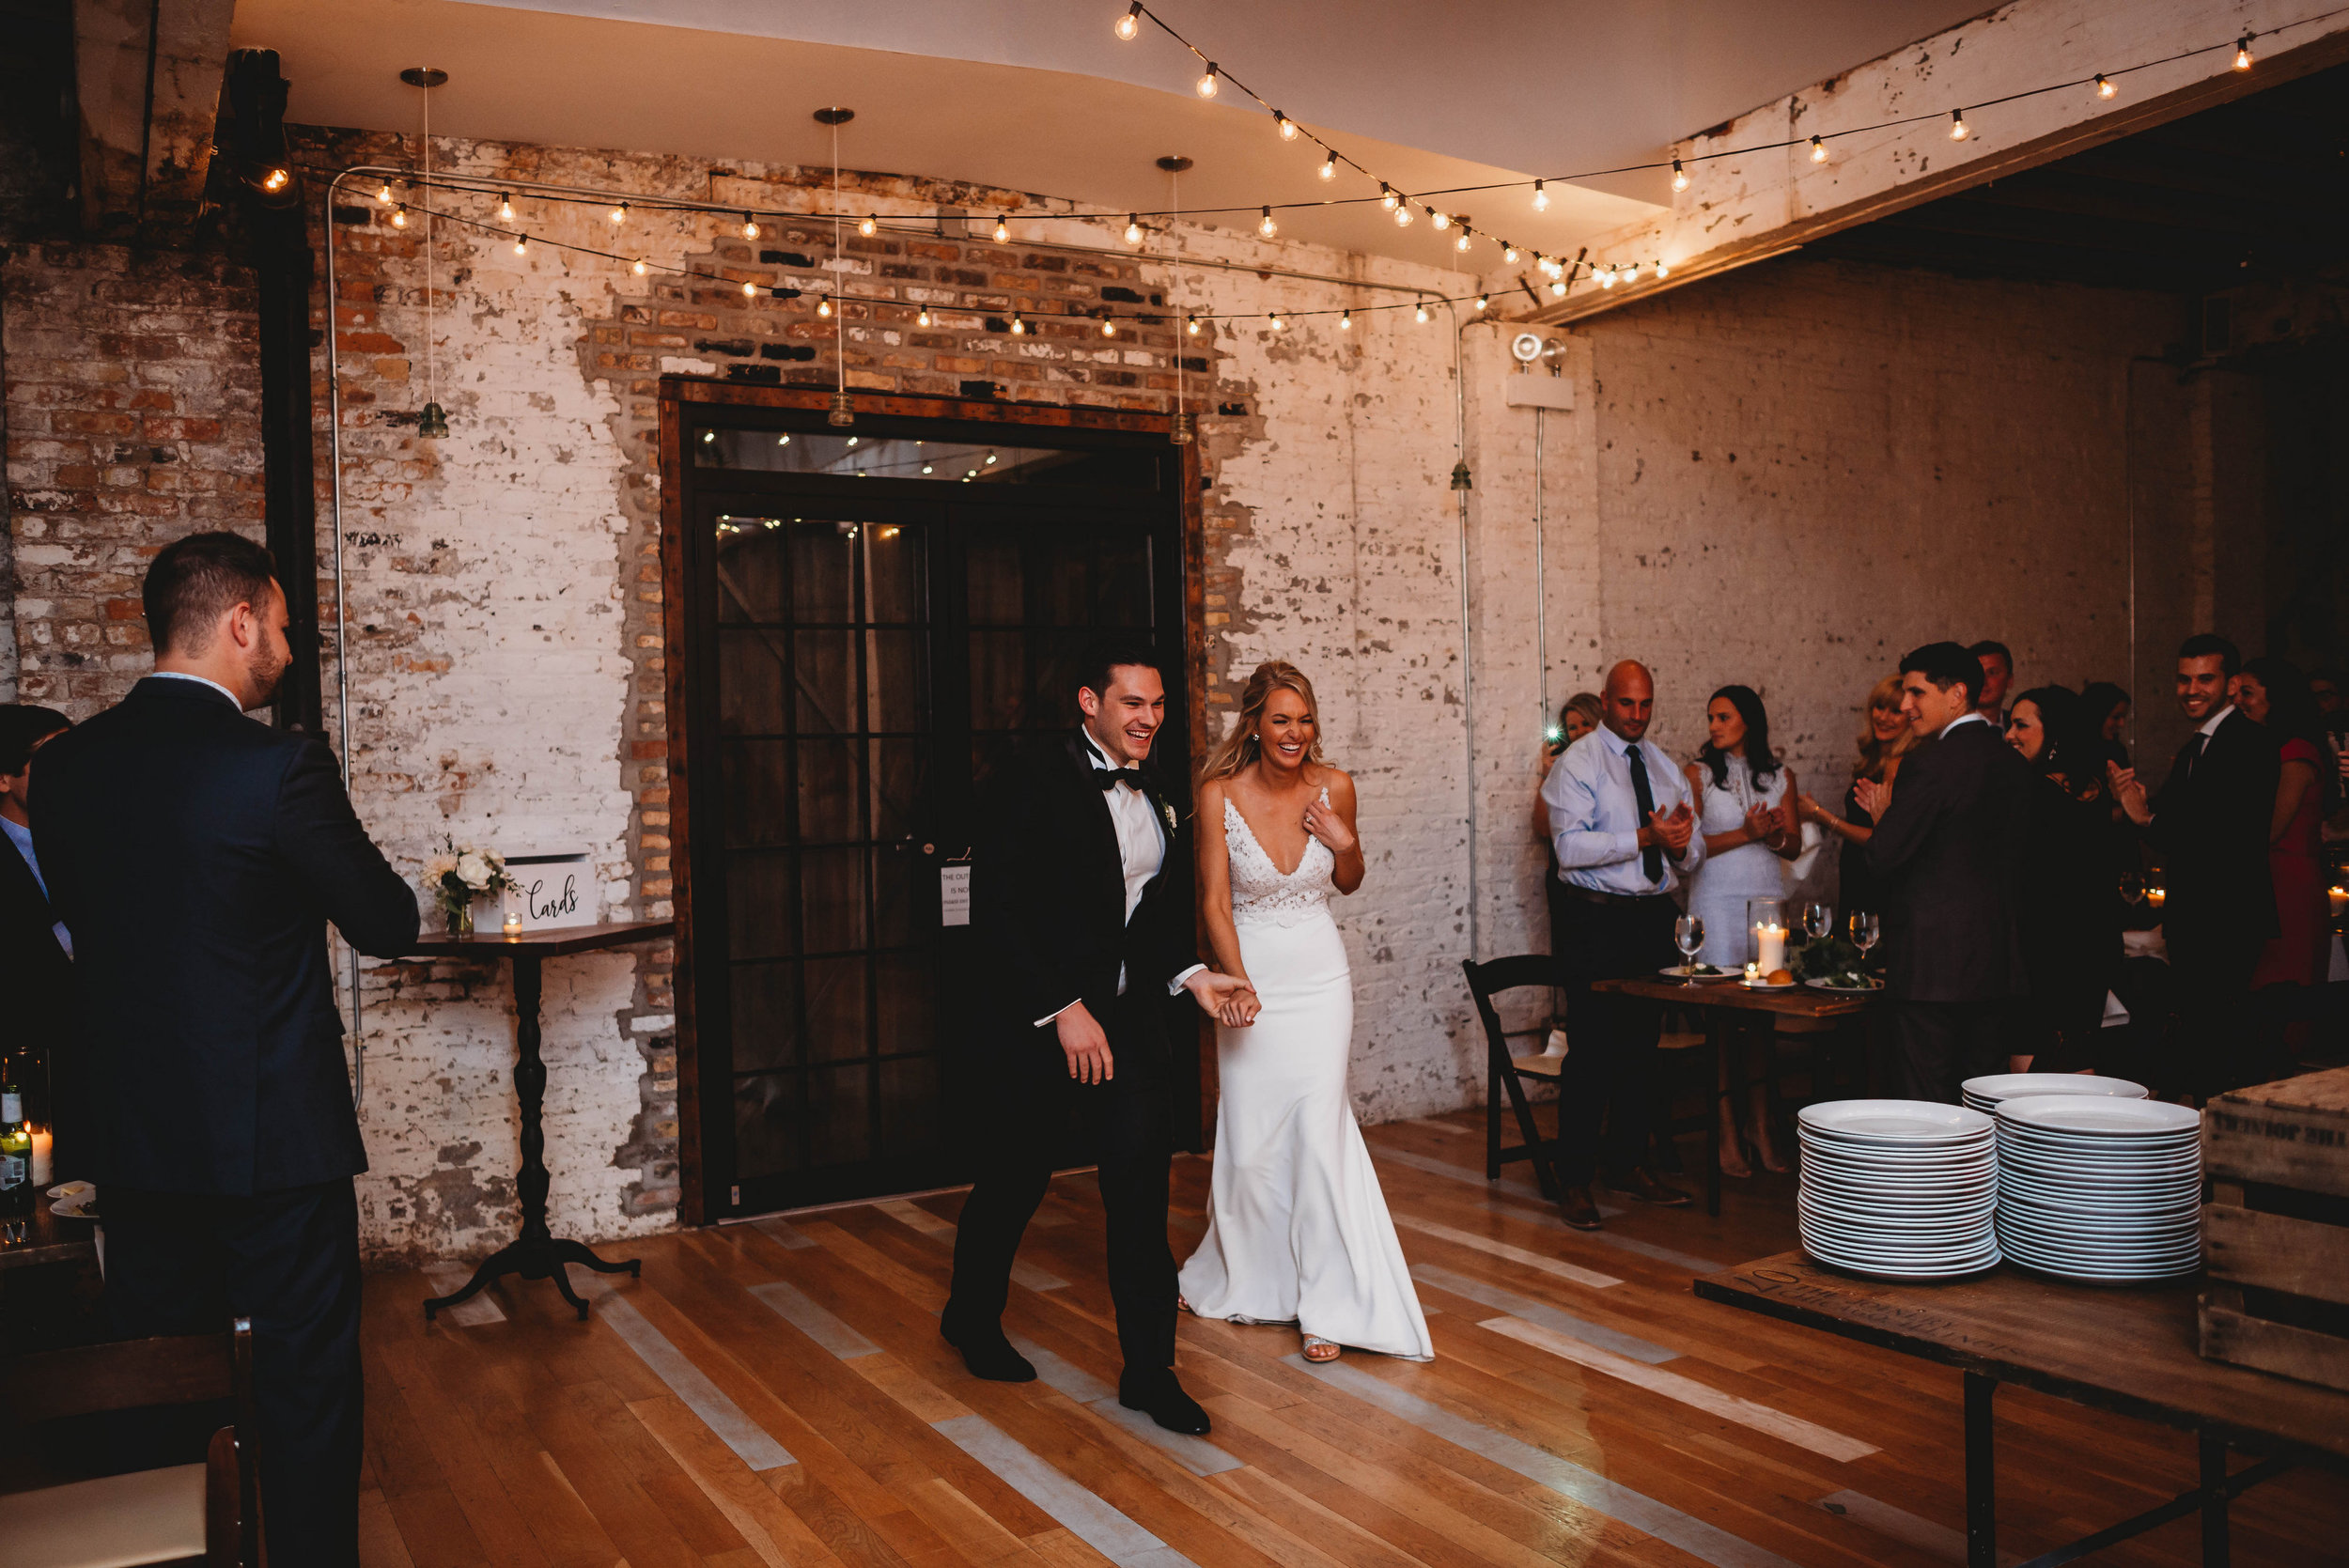 Elegant Chicago garden wedding at The Joinery captured by Girl with the Tattoos Fine Art Photographer. See more elegant wedding ideas at CHItheeWED.com!